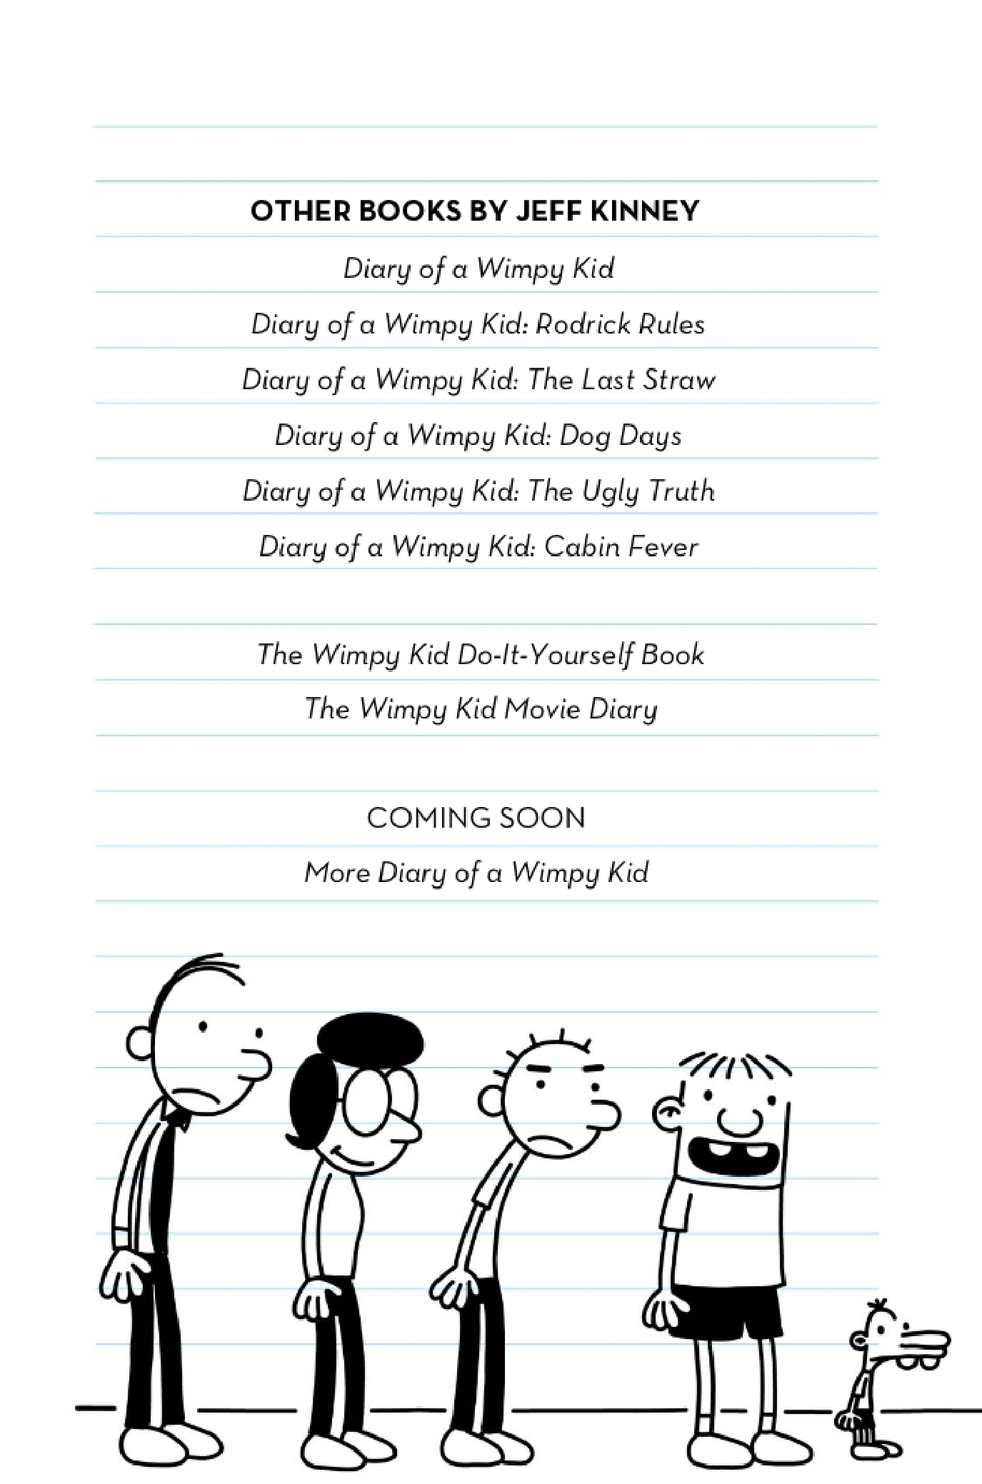 Diary of a wimpy kid 7 the third wheel calameo downloader download solutioingenieria Images